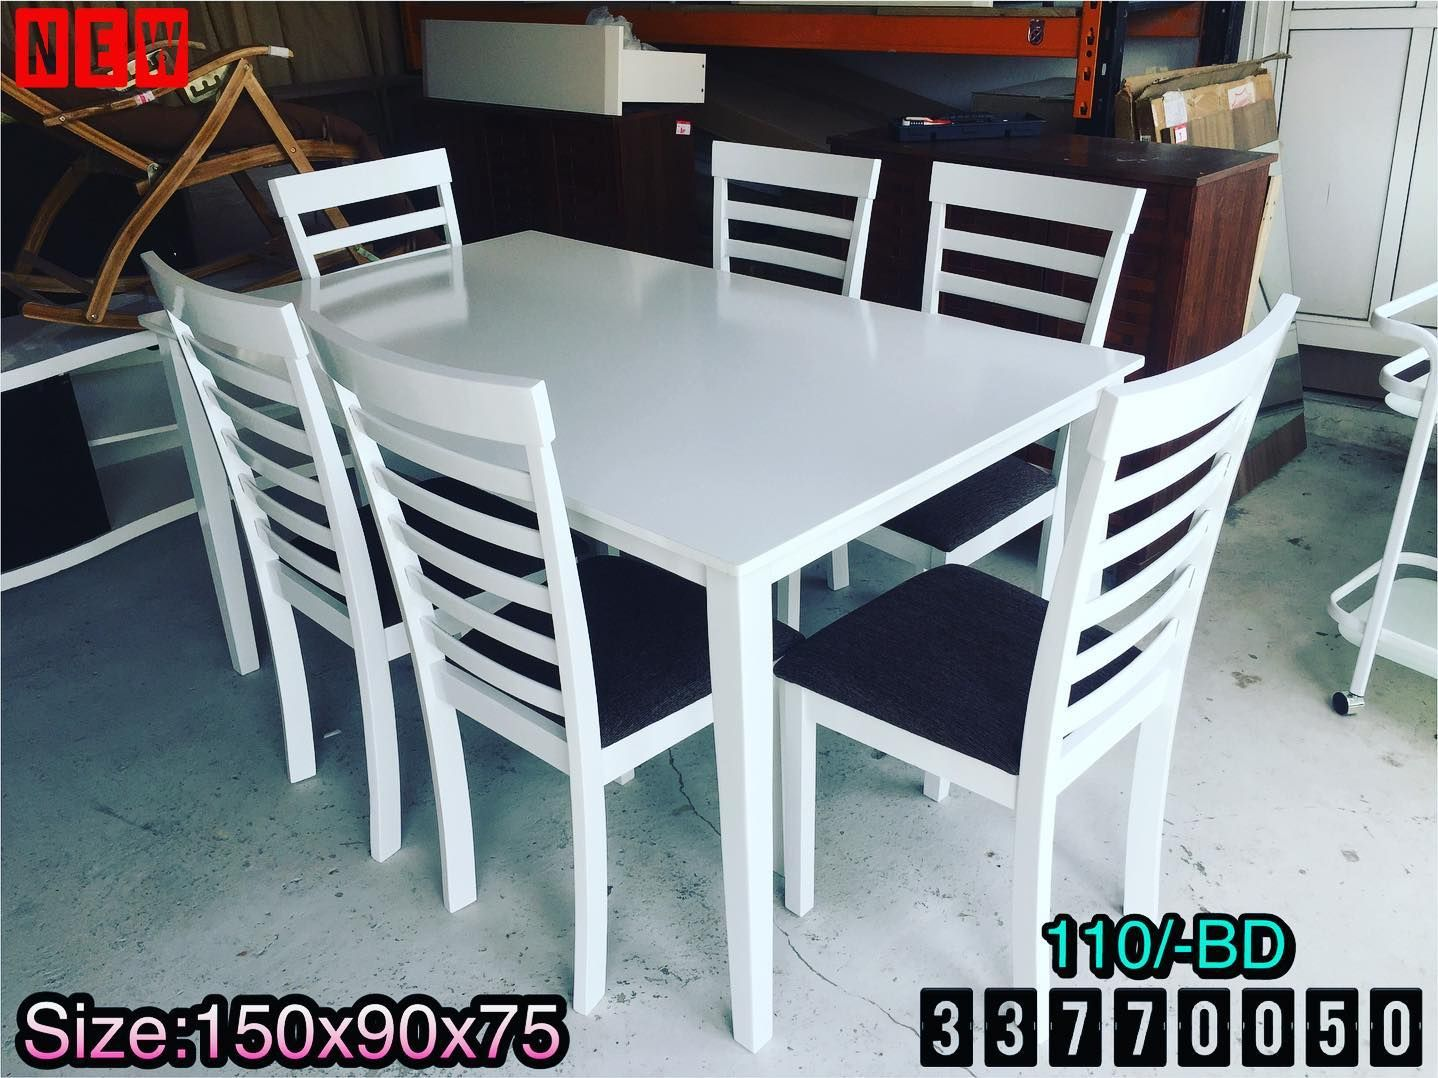 Dining Table For 6 Person Size 150x90x75 Wood White Color New Made In Malaysia Price 110 Bd طاولة طعام ل 6 أشخاص خشب لون Home Decor Home Furniture